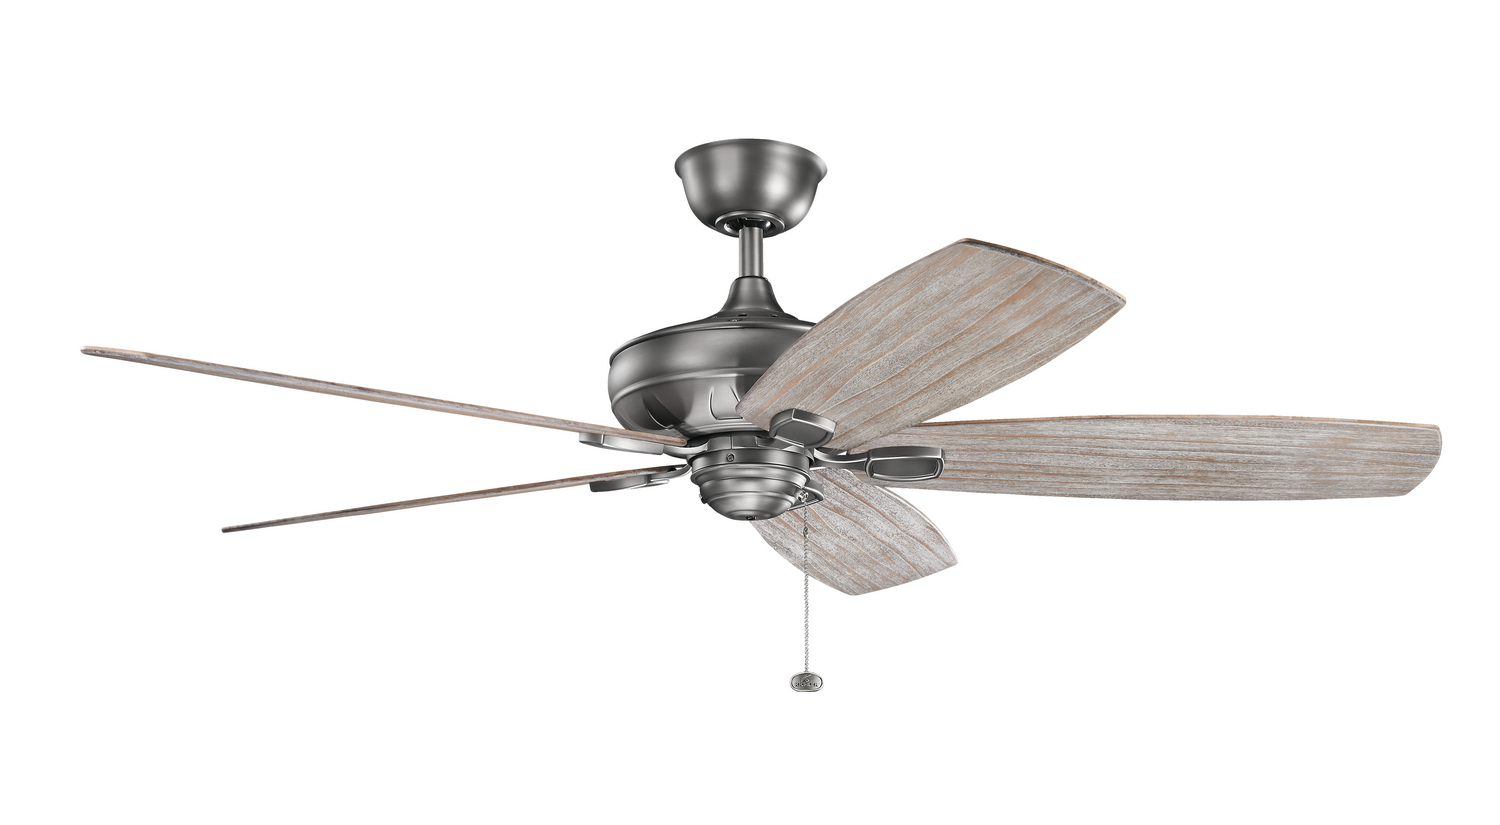 60 inchCeiling Fan from the Ashbyrn collection by Kichler 300269AP